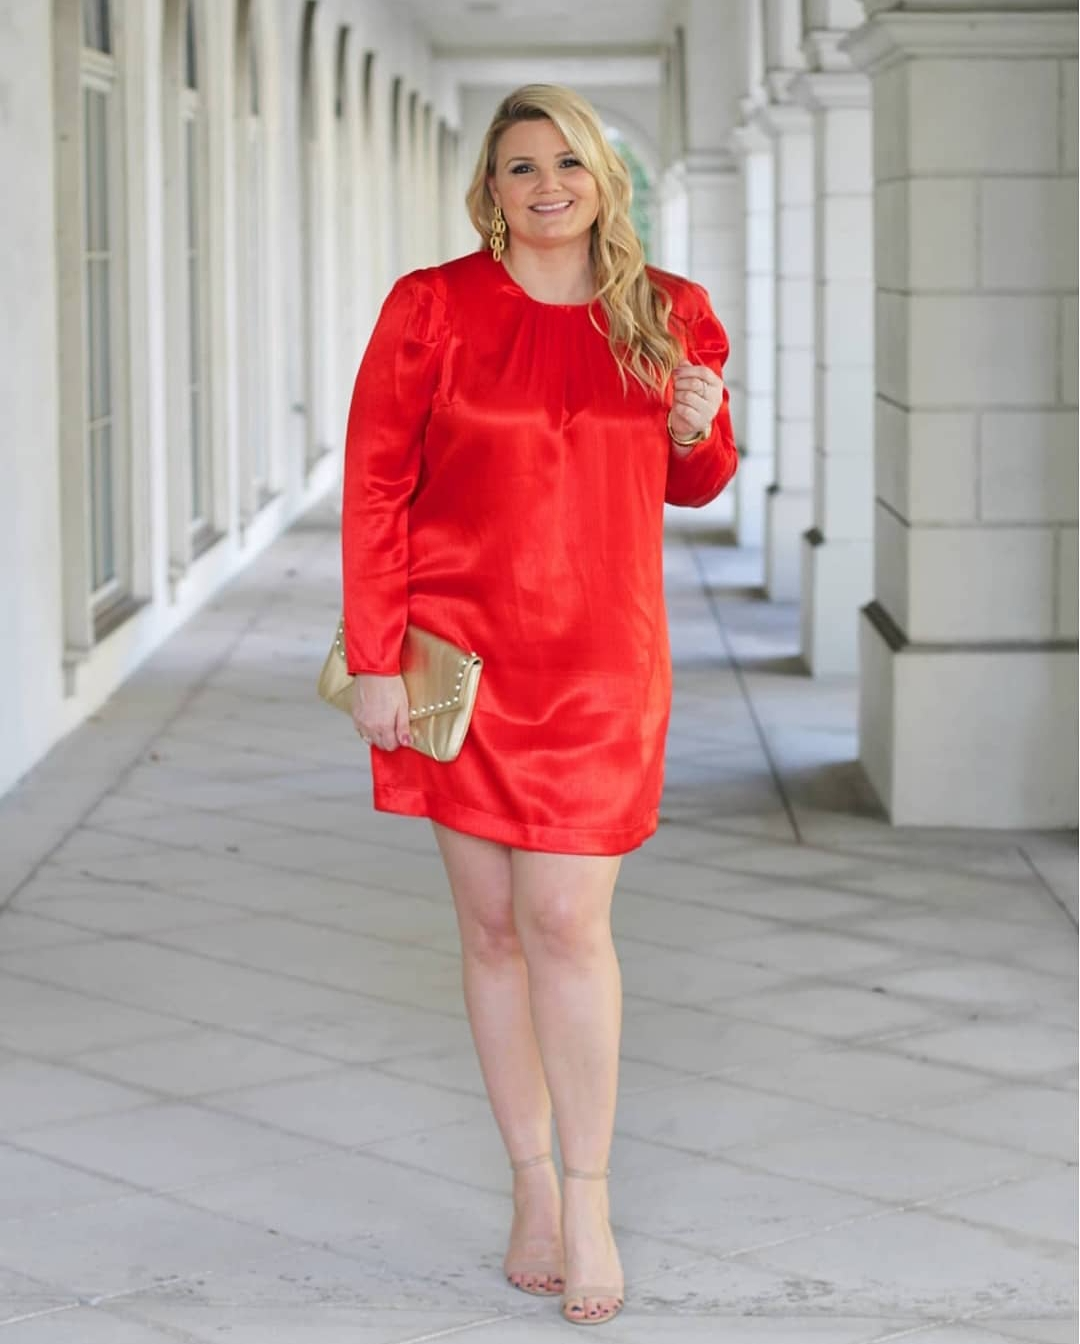 Valentine's Day outfit inspiration featured by Orlando fashion blog, Fabulously Overdressed: image of a woman wearing red dress